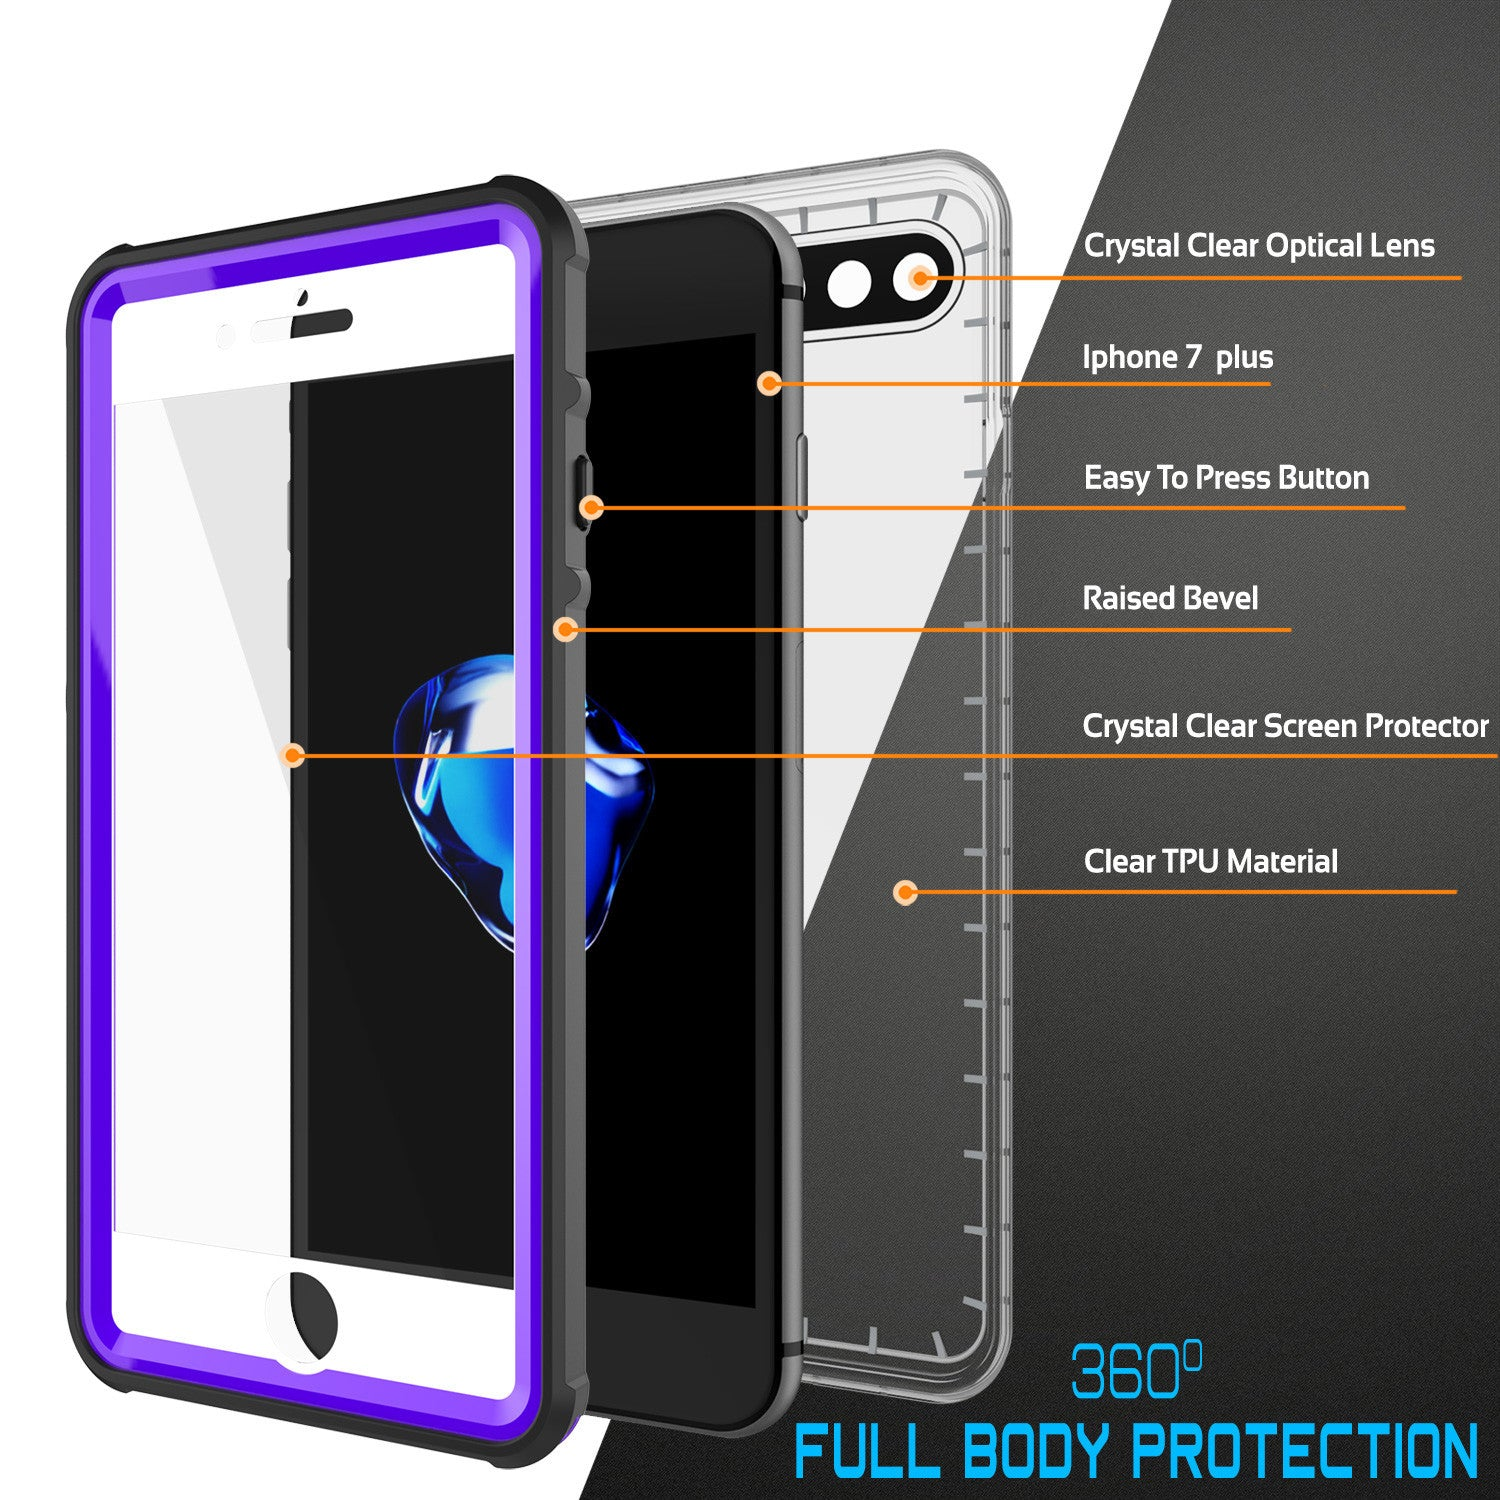 PUNKCASE - Crystal Series Waterproof Case for Apple IPhone 7+ Plus | Purple